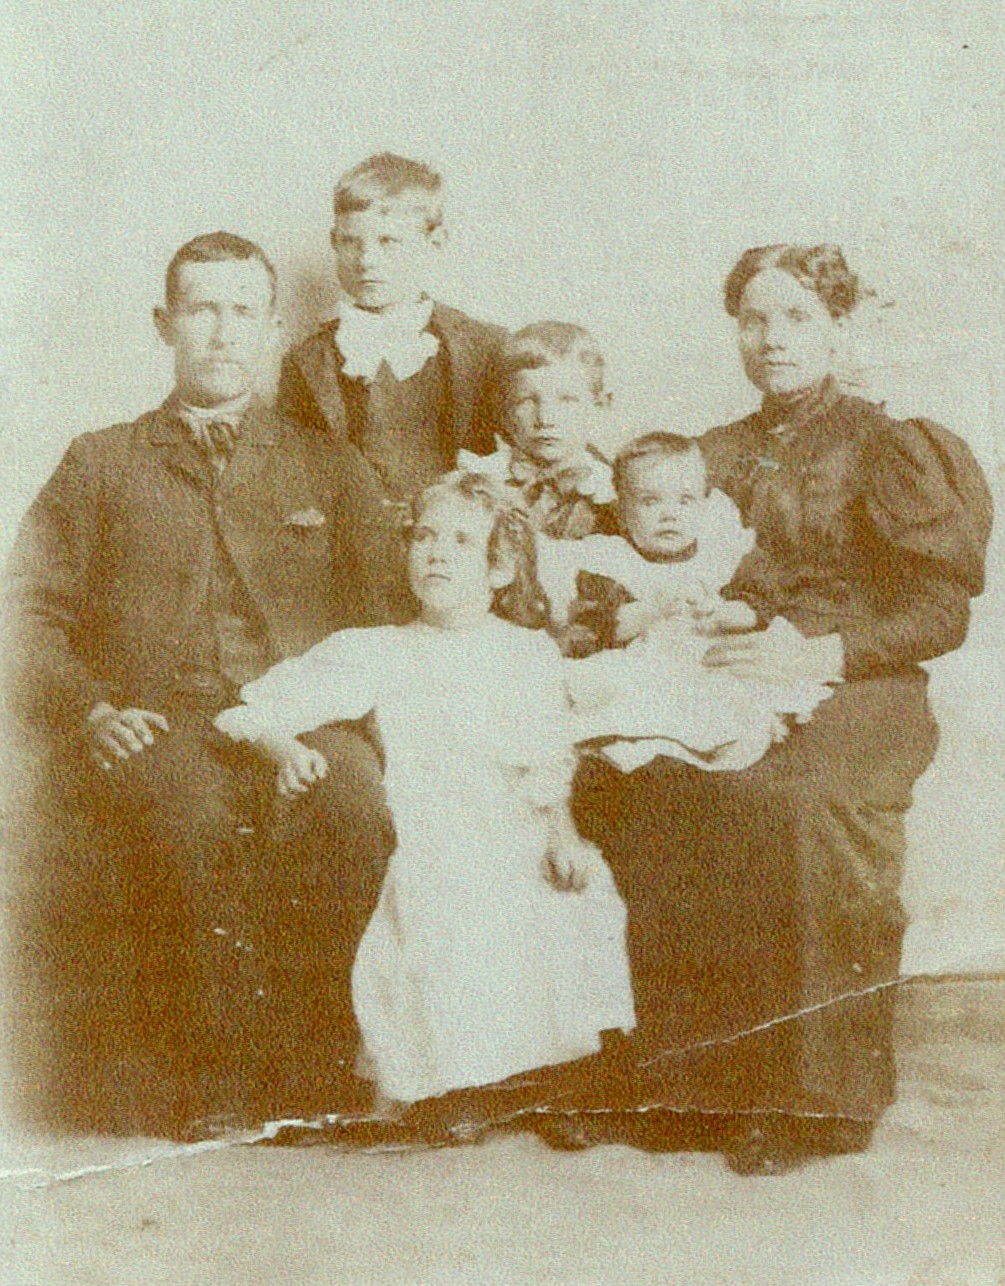 James & Sarah Elizabeth Prince family